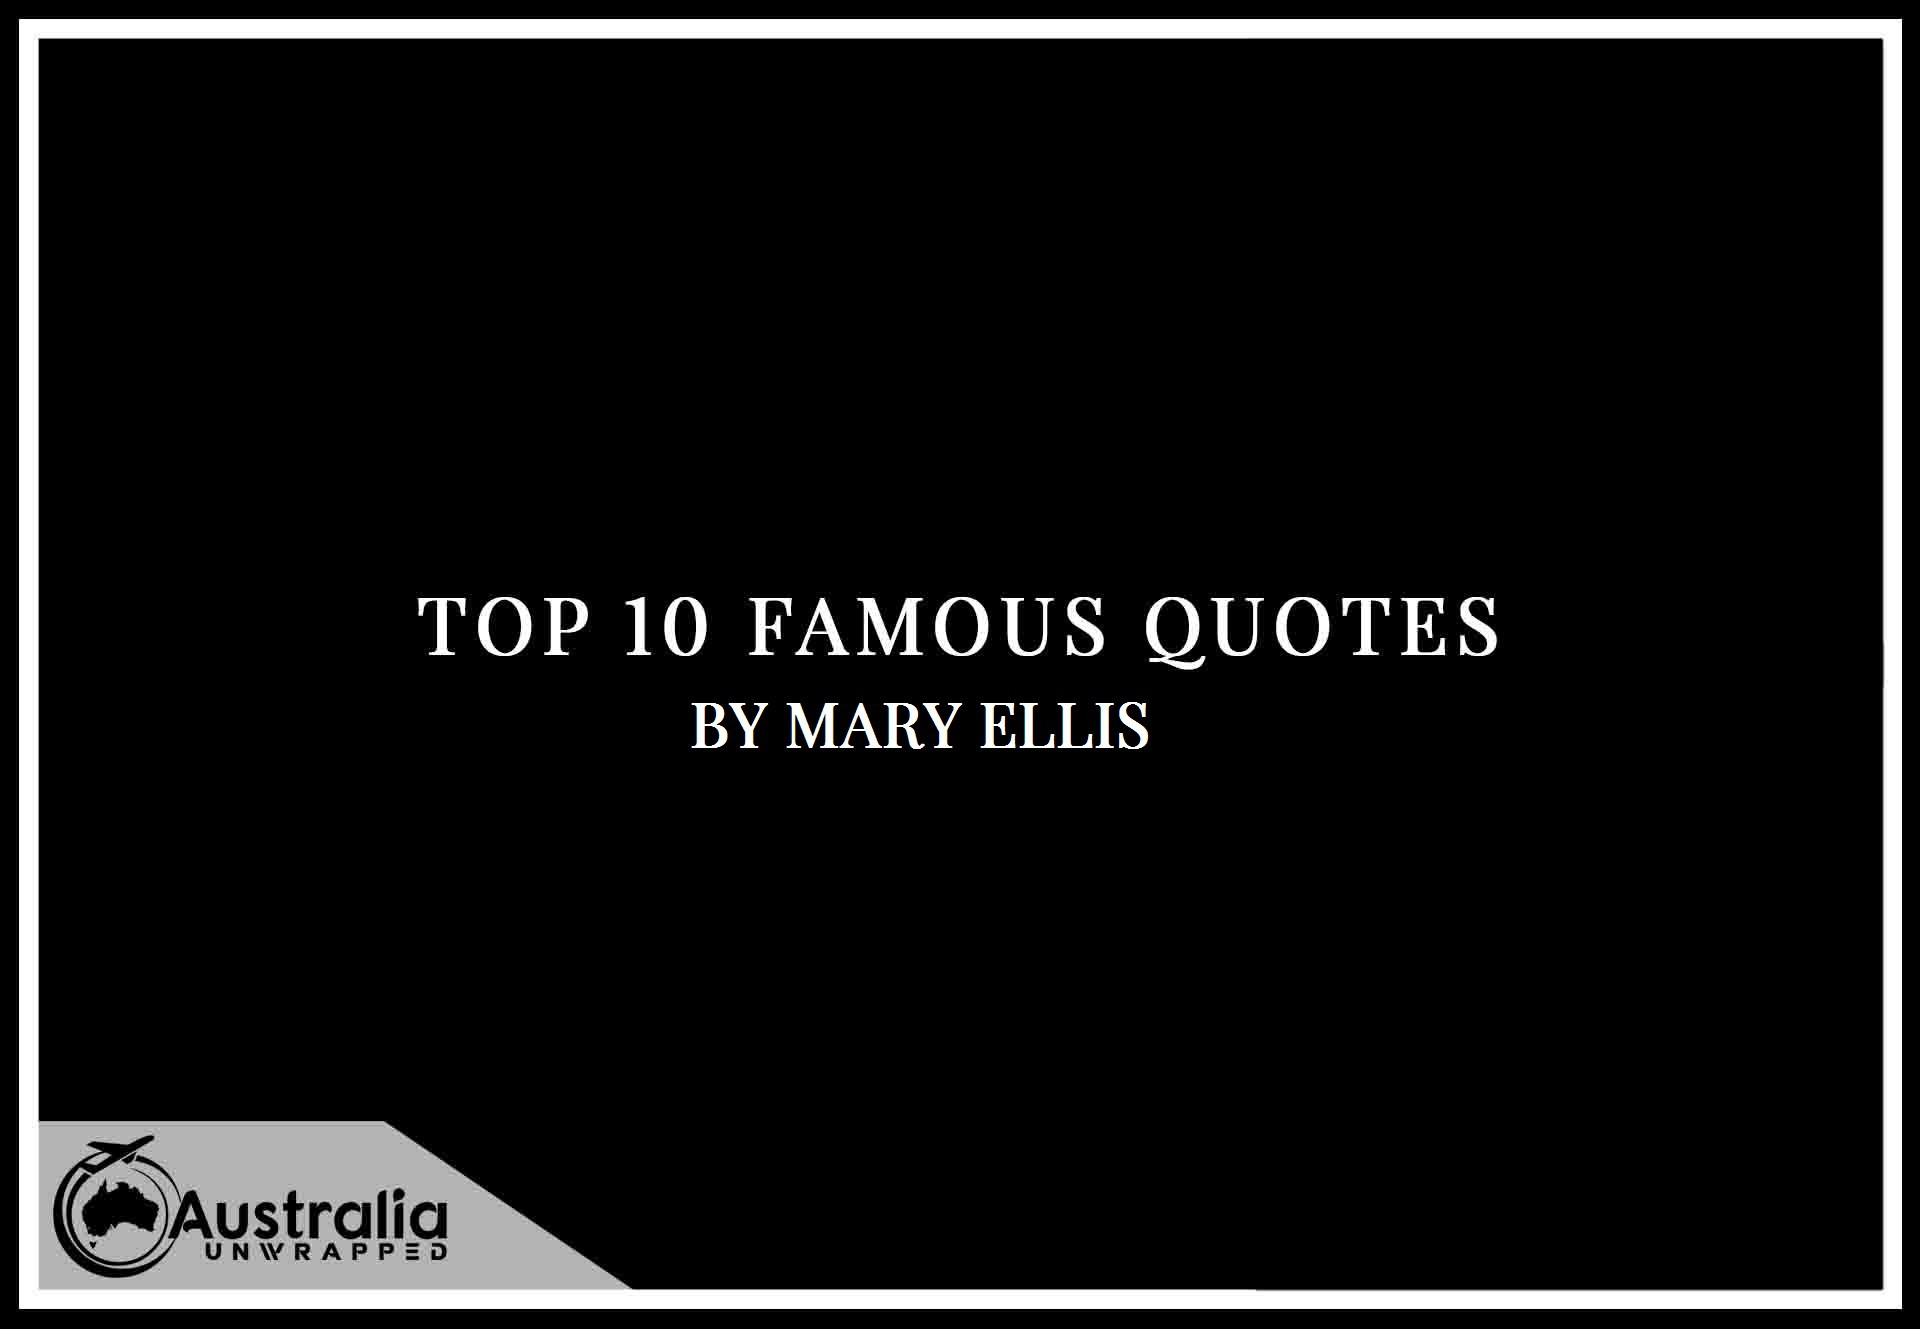 Mary Ellis's Top 10 Popular and Famous Quotes